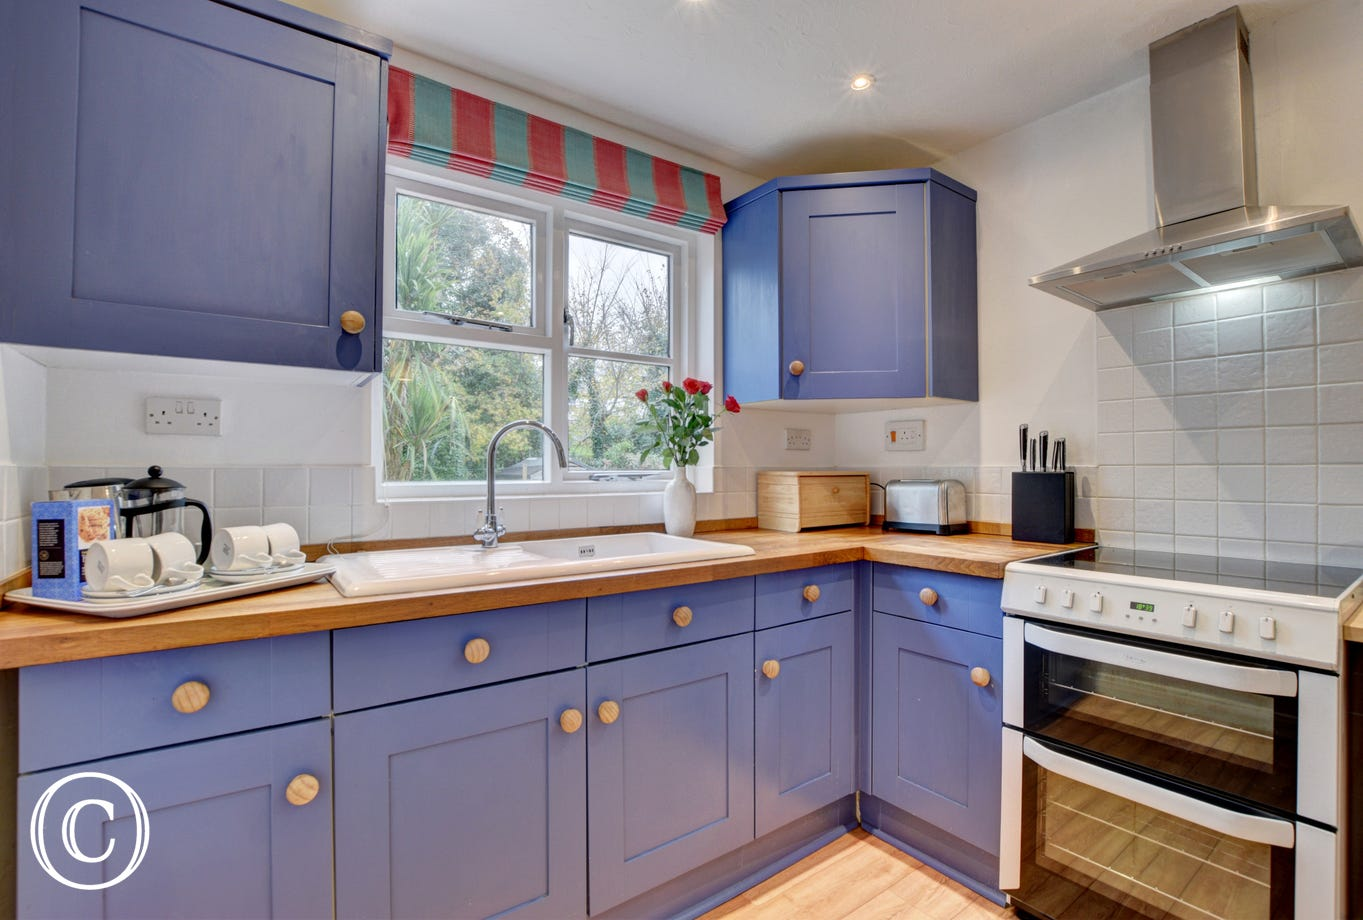 Well equipped kitchen with views to the garden